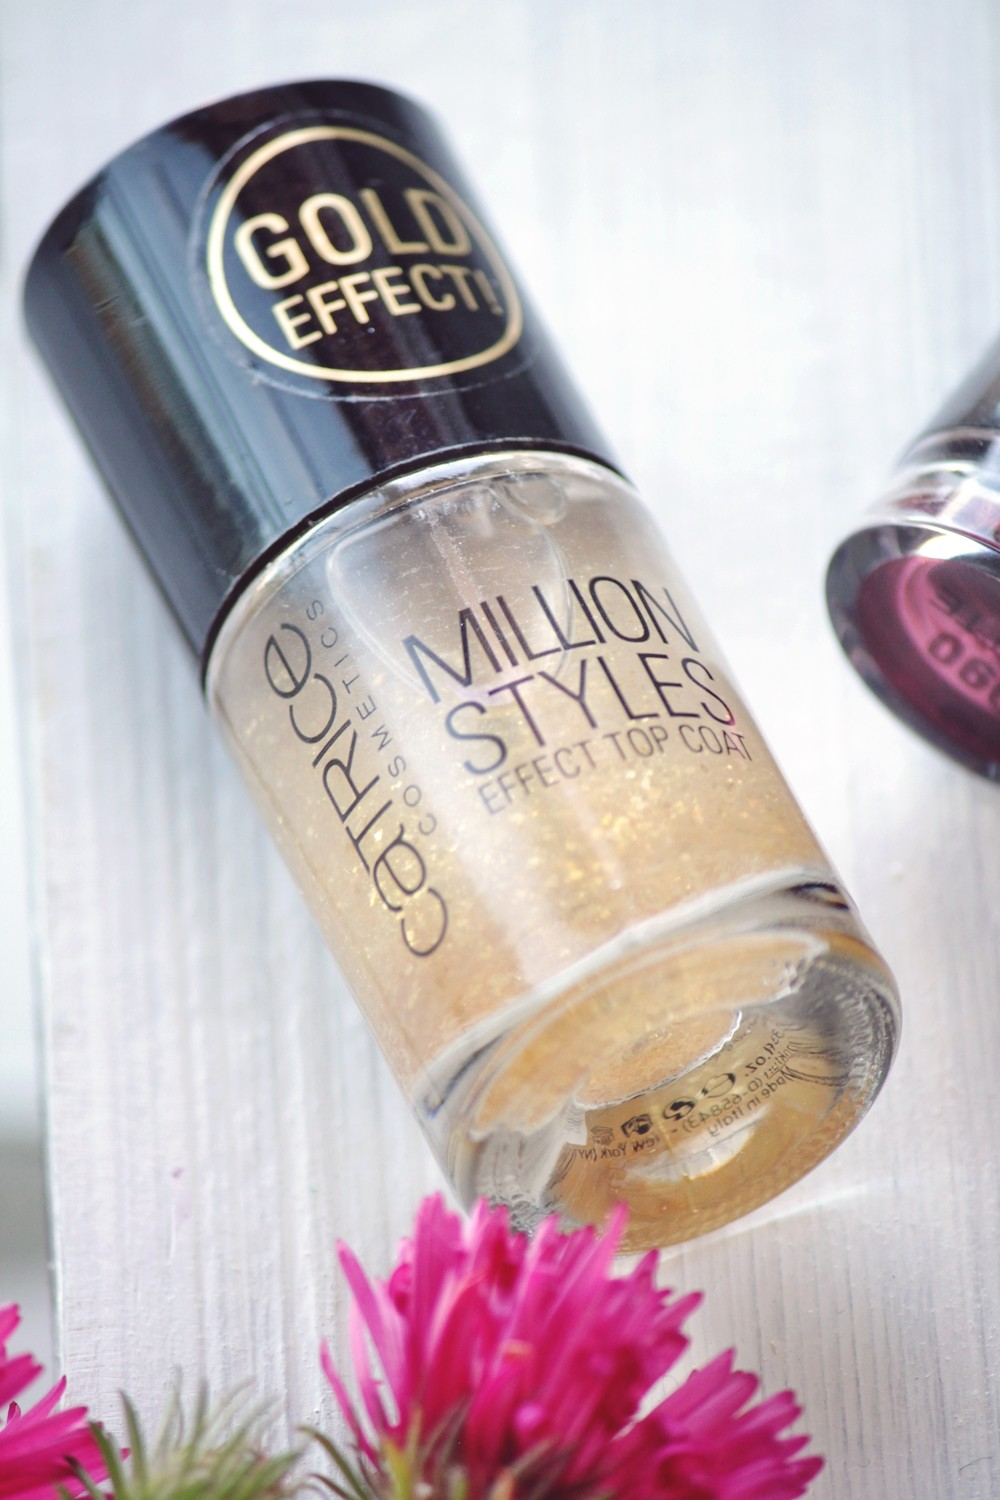 Holy Grails of beauty Catrice Million Styles Effect Top Coat Gold Effect